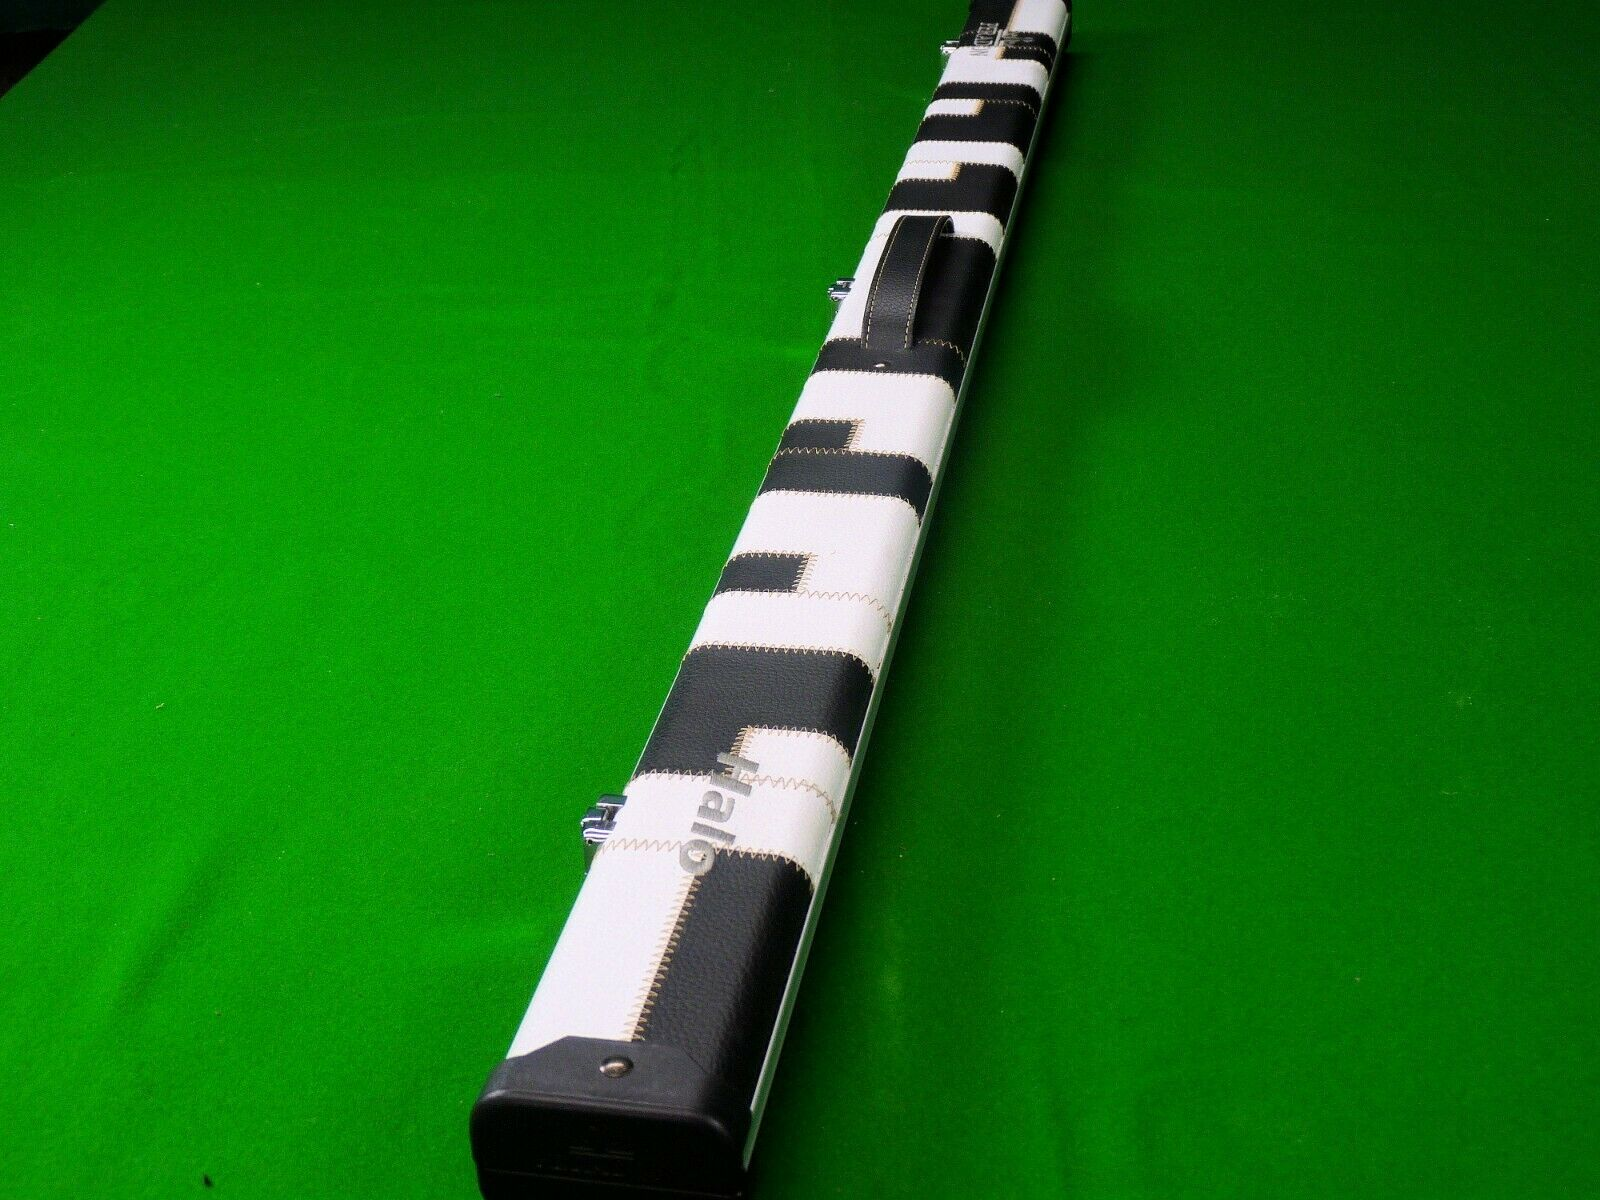 Peradon Halo Black/White Patch 3/4 Snooker Cue Case